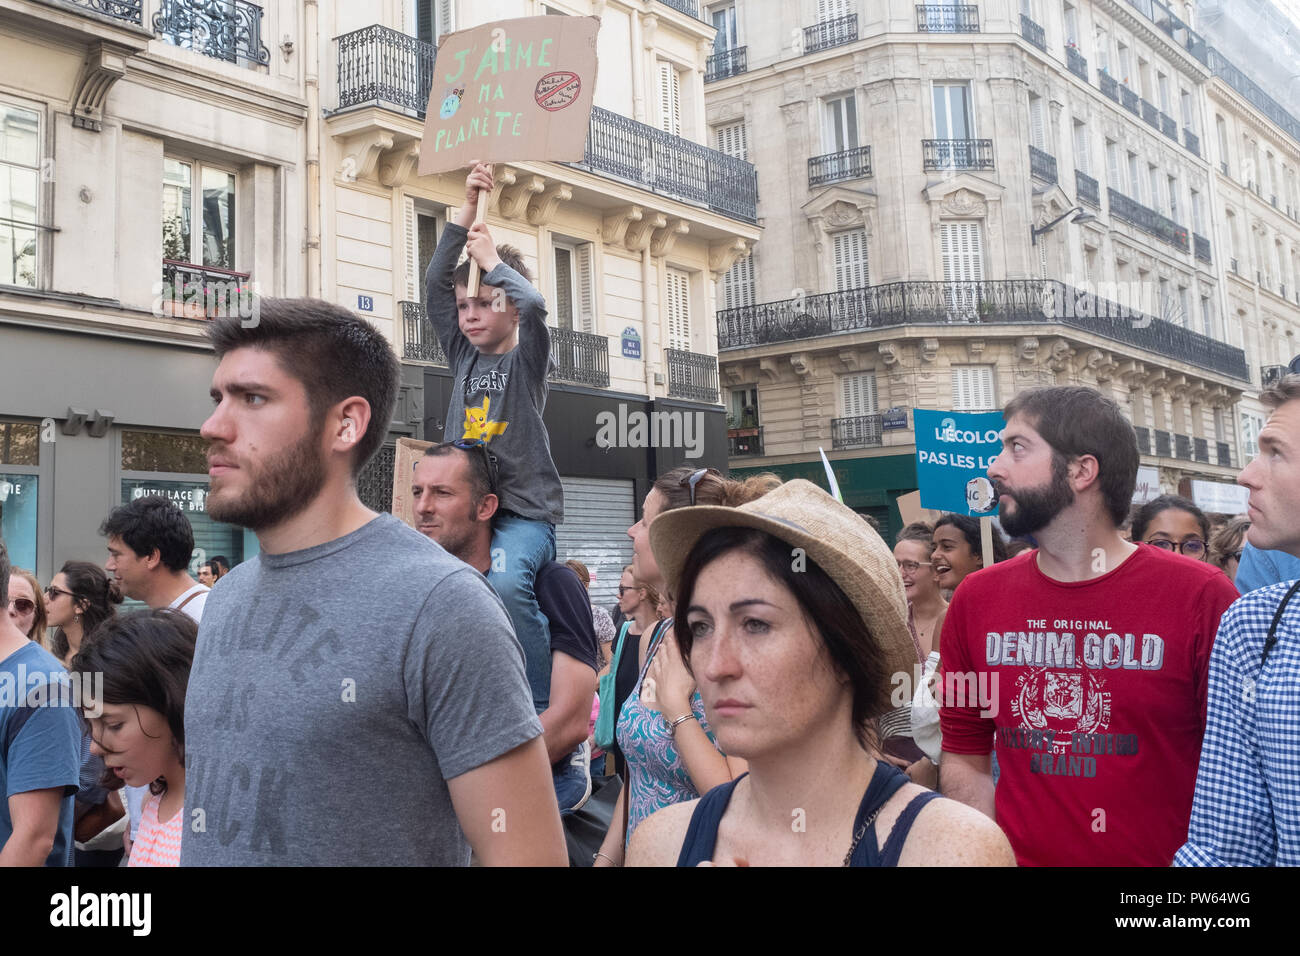 Paris, France, October 13, 2018: Demonstrators march to the Place de la Republique in protest against climate change and global warming Credit: On Sight Photographic/Alamy Live News - Stock Image